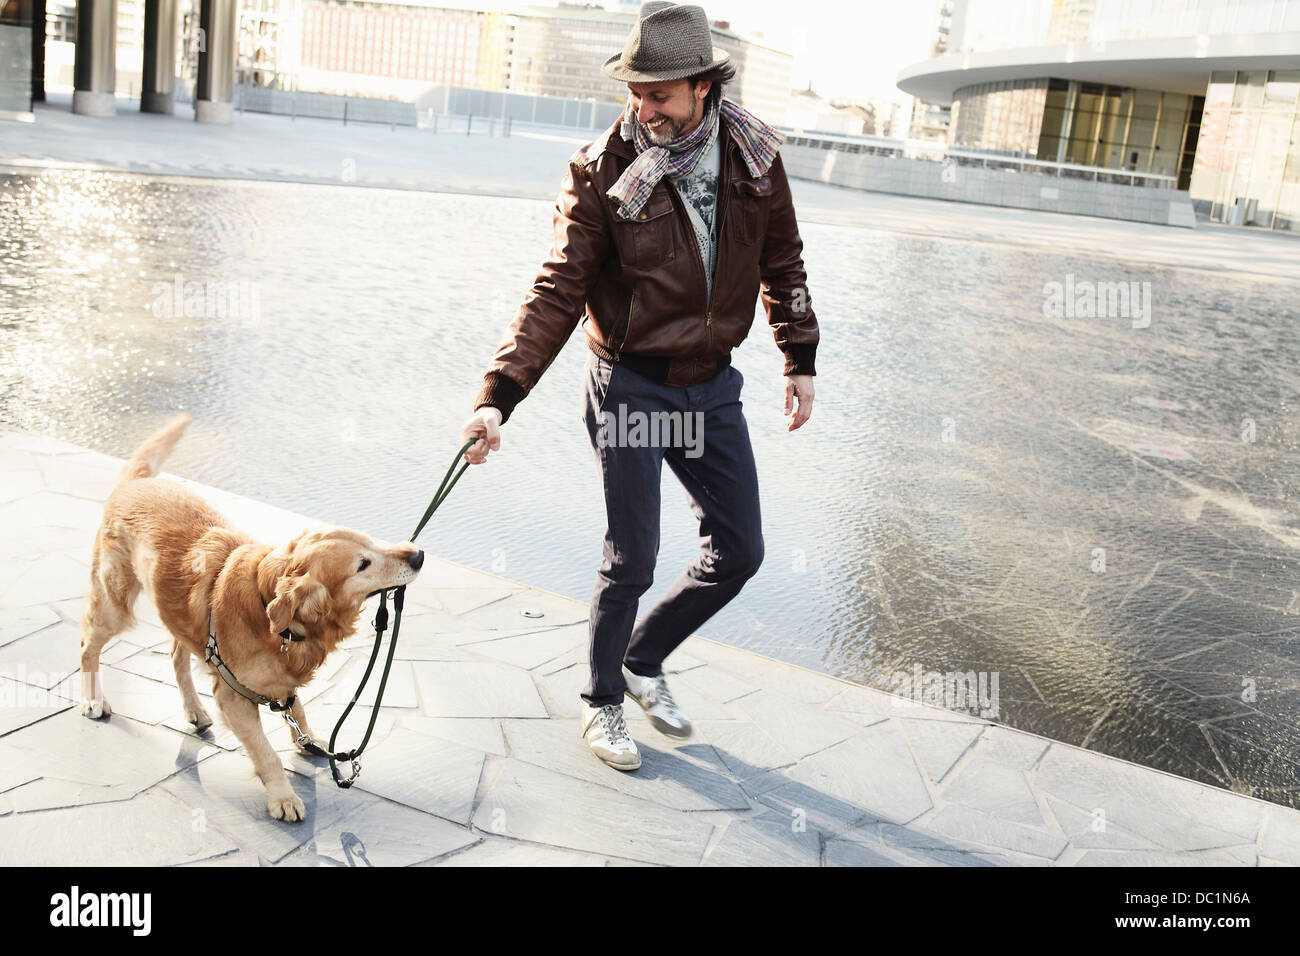 Mid adult man pulling leash on pet dog in city - Stock Image